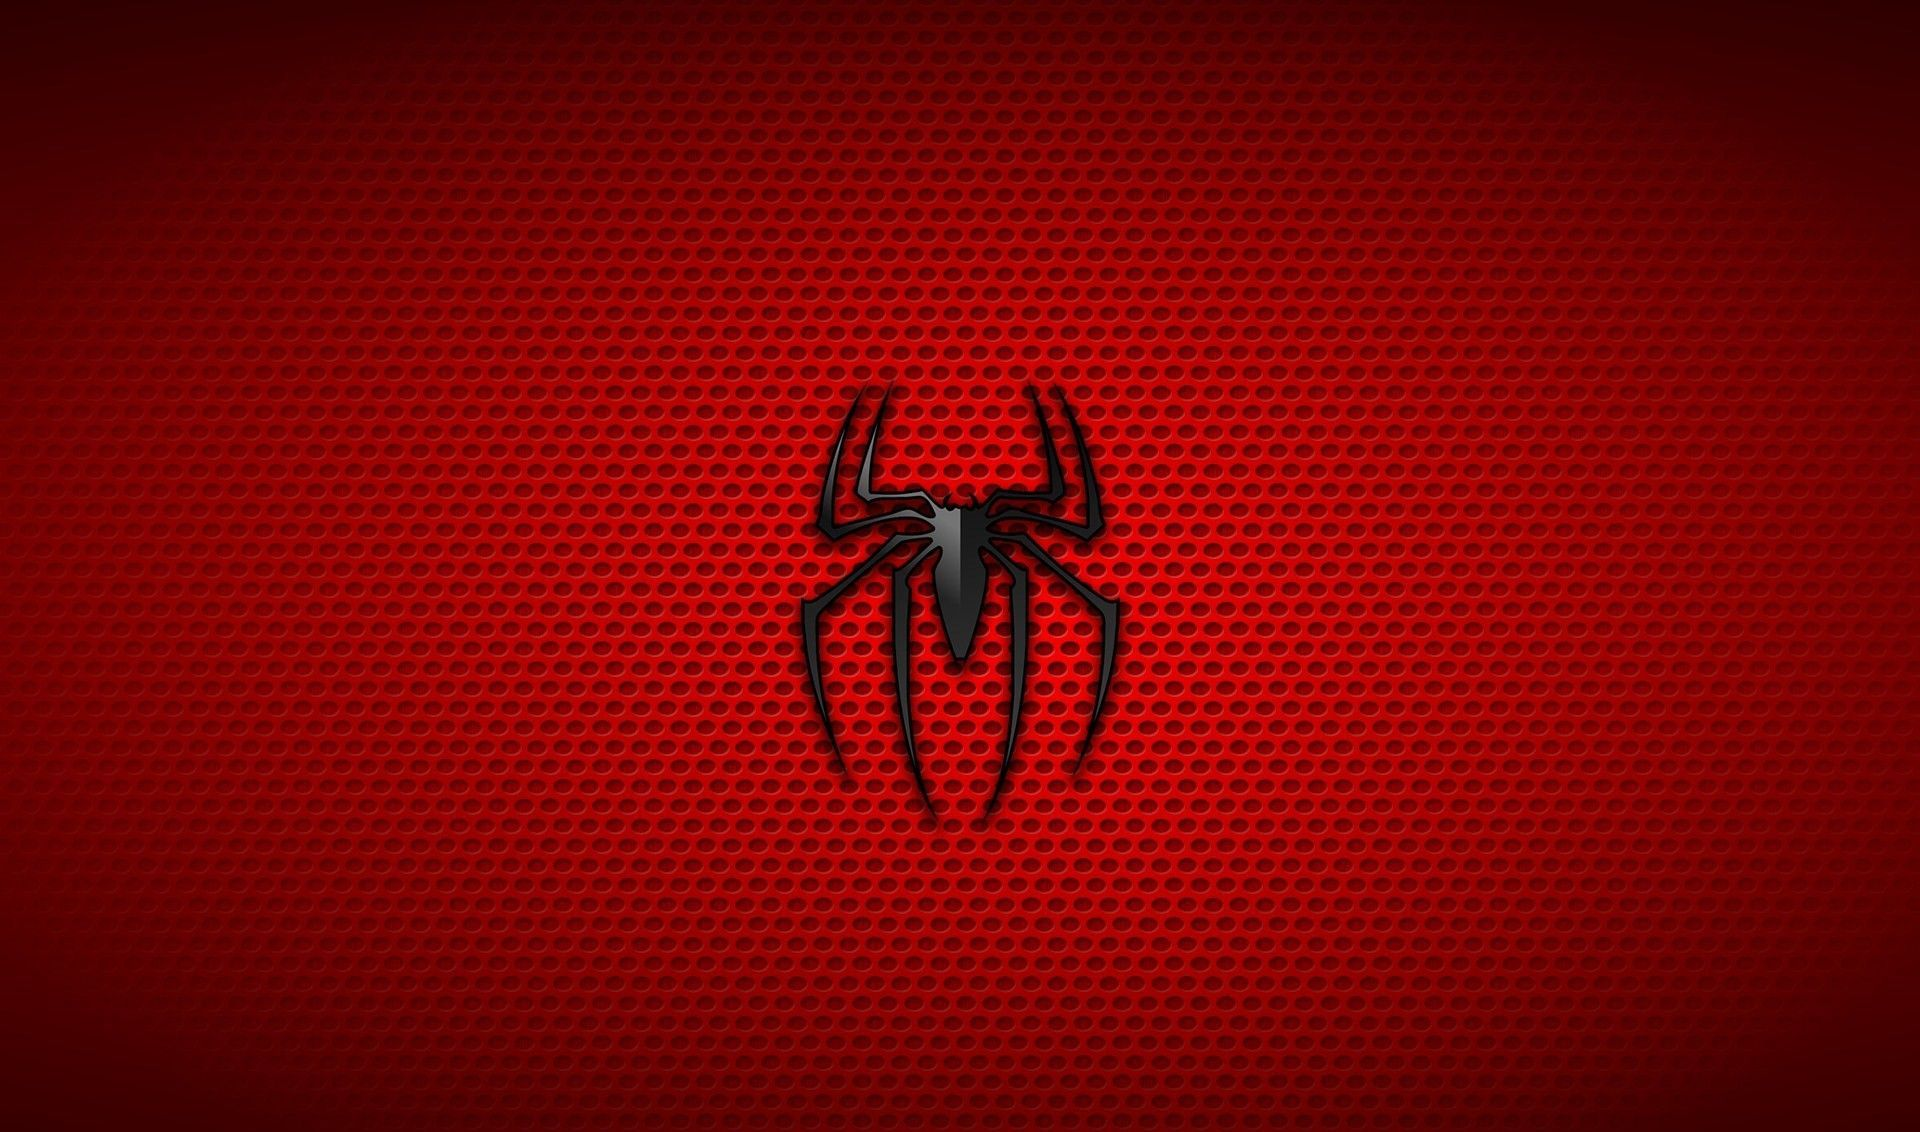 spiderman wallpaper - sf wallpaper